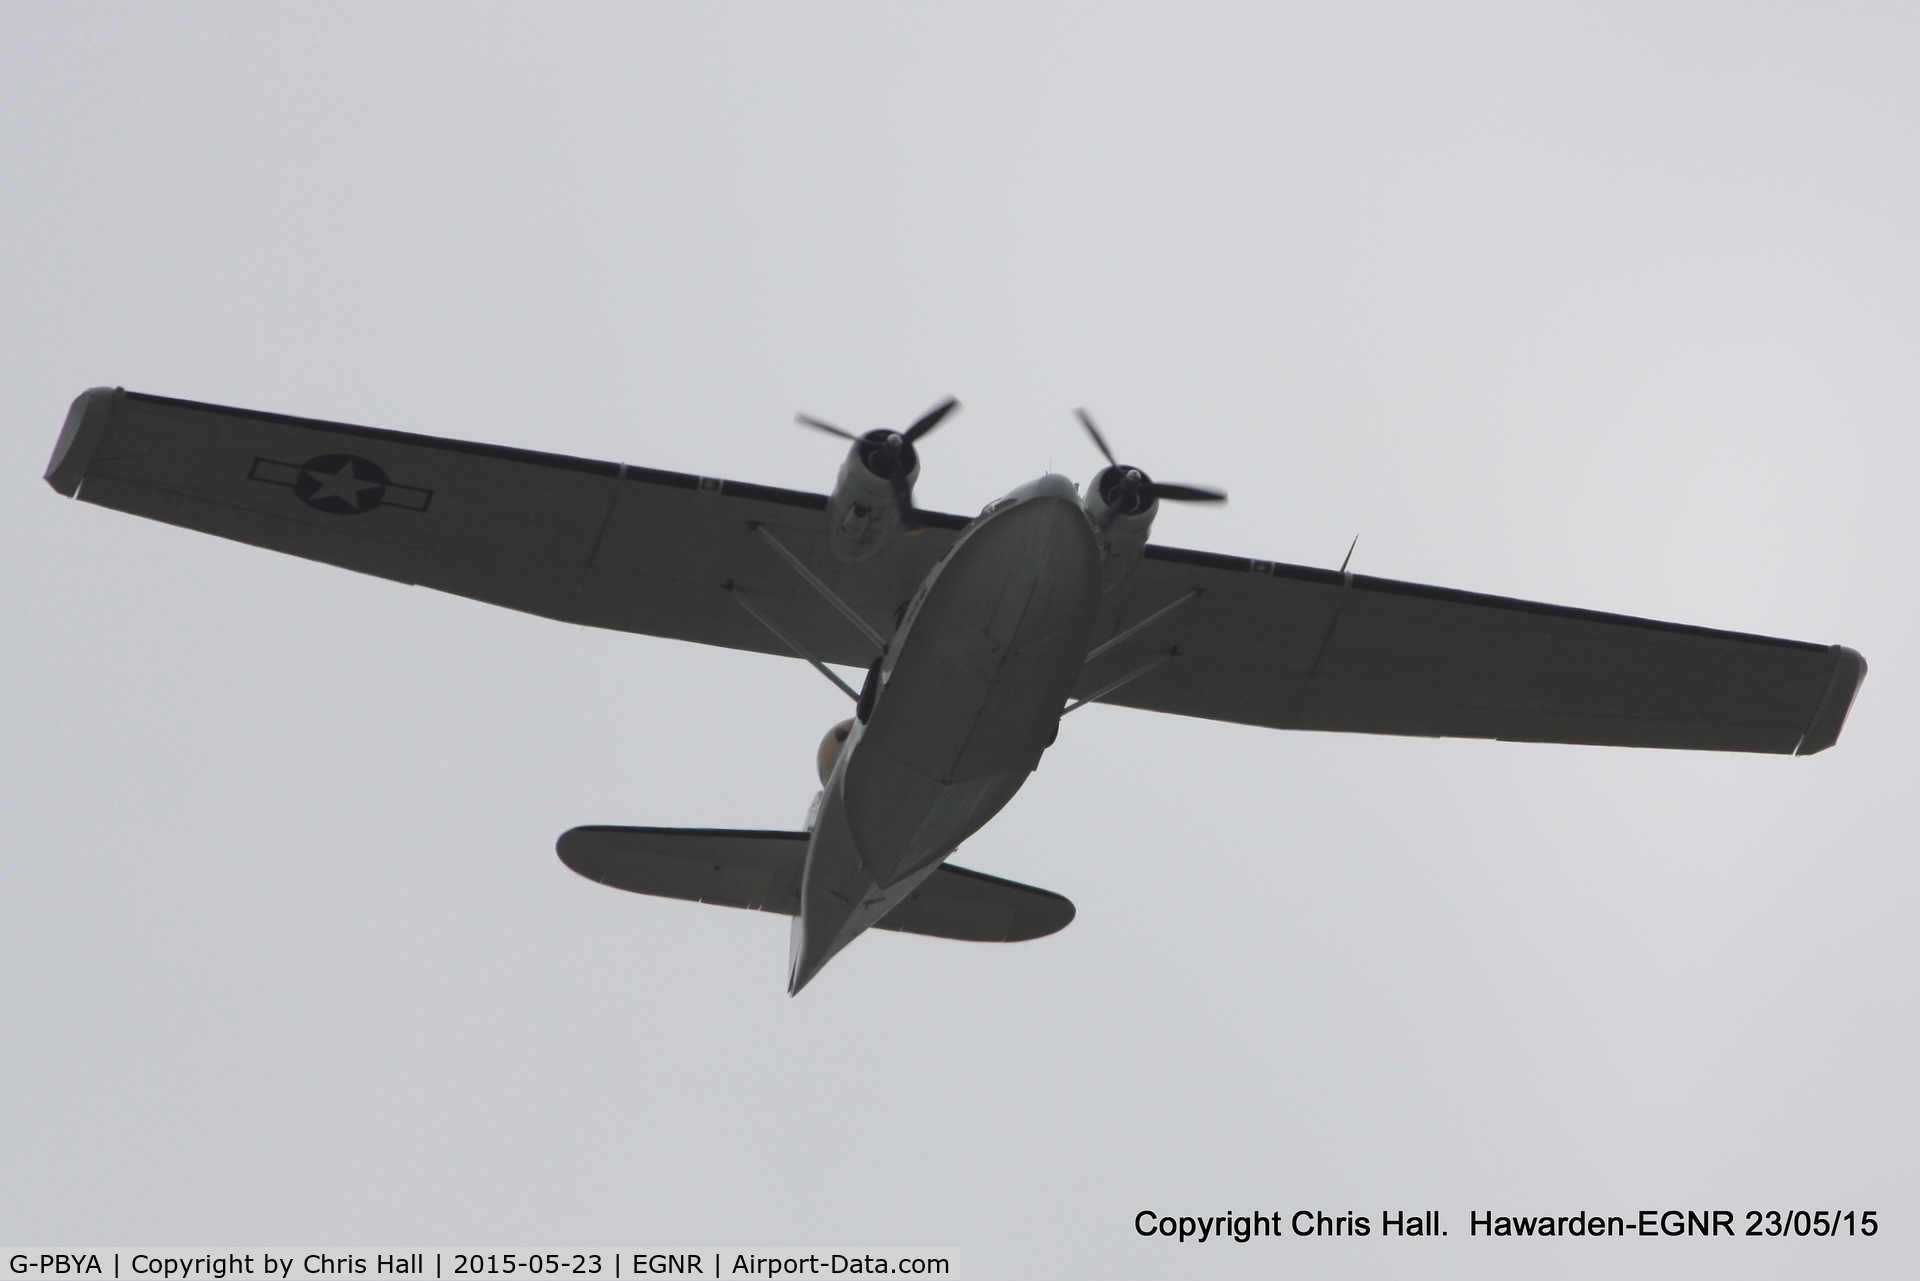 G-PBYA, 1944 Consolidated (Canadian Vickers) PBV-1A Canso A C/N CV-283, overhead Hawarden onroute to the Llandudno Airshow